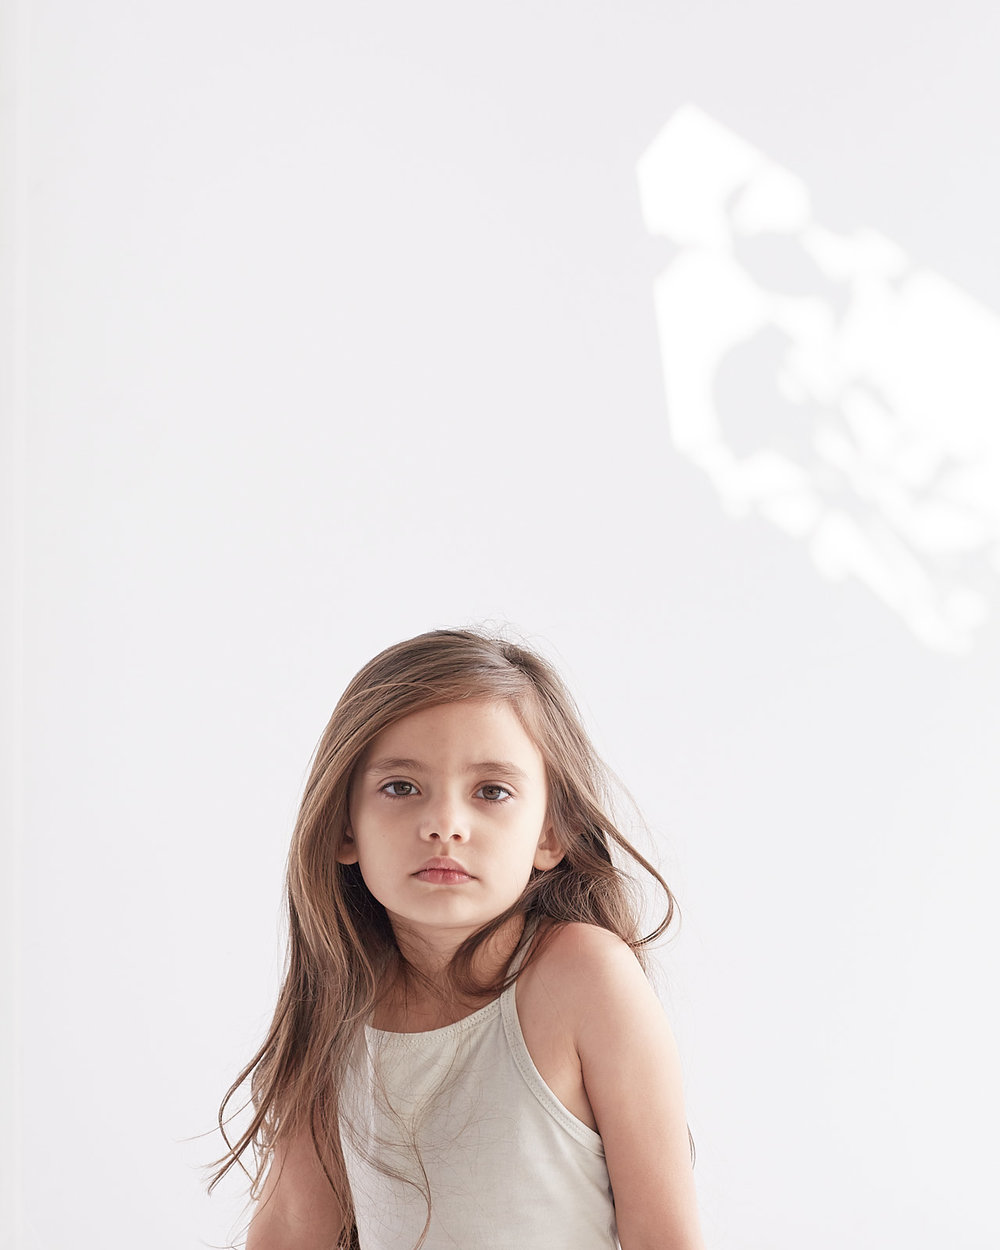 Littles Collection s/s-18 shoot